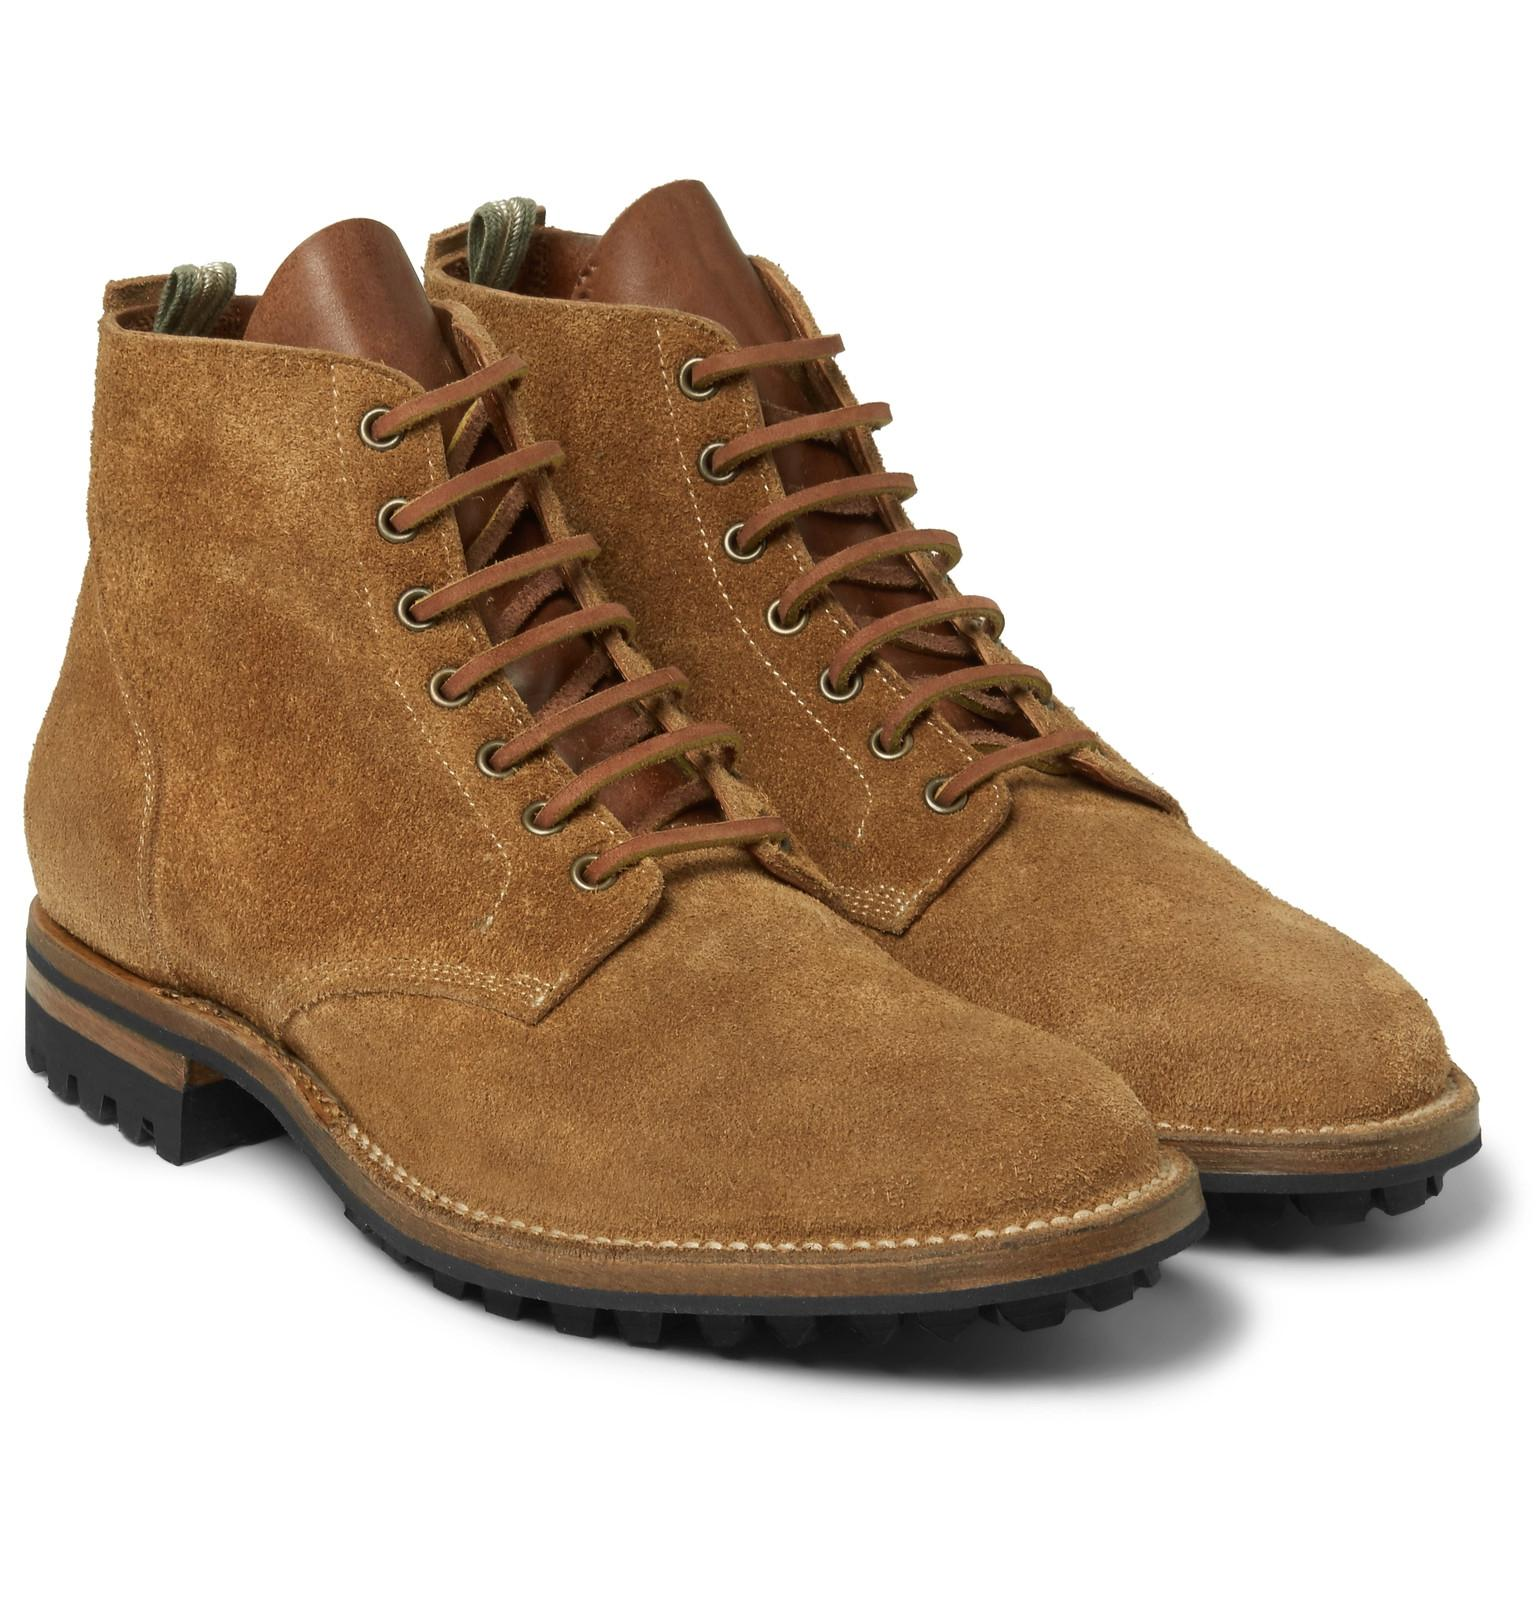 Officine creativeVictoria shoes cm6OPnSCH4